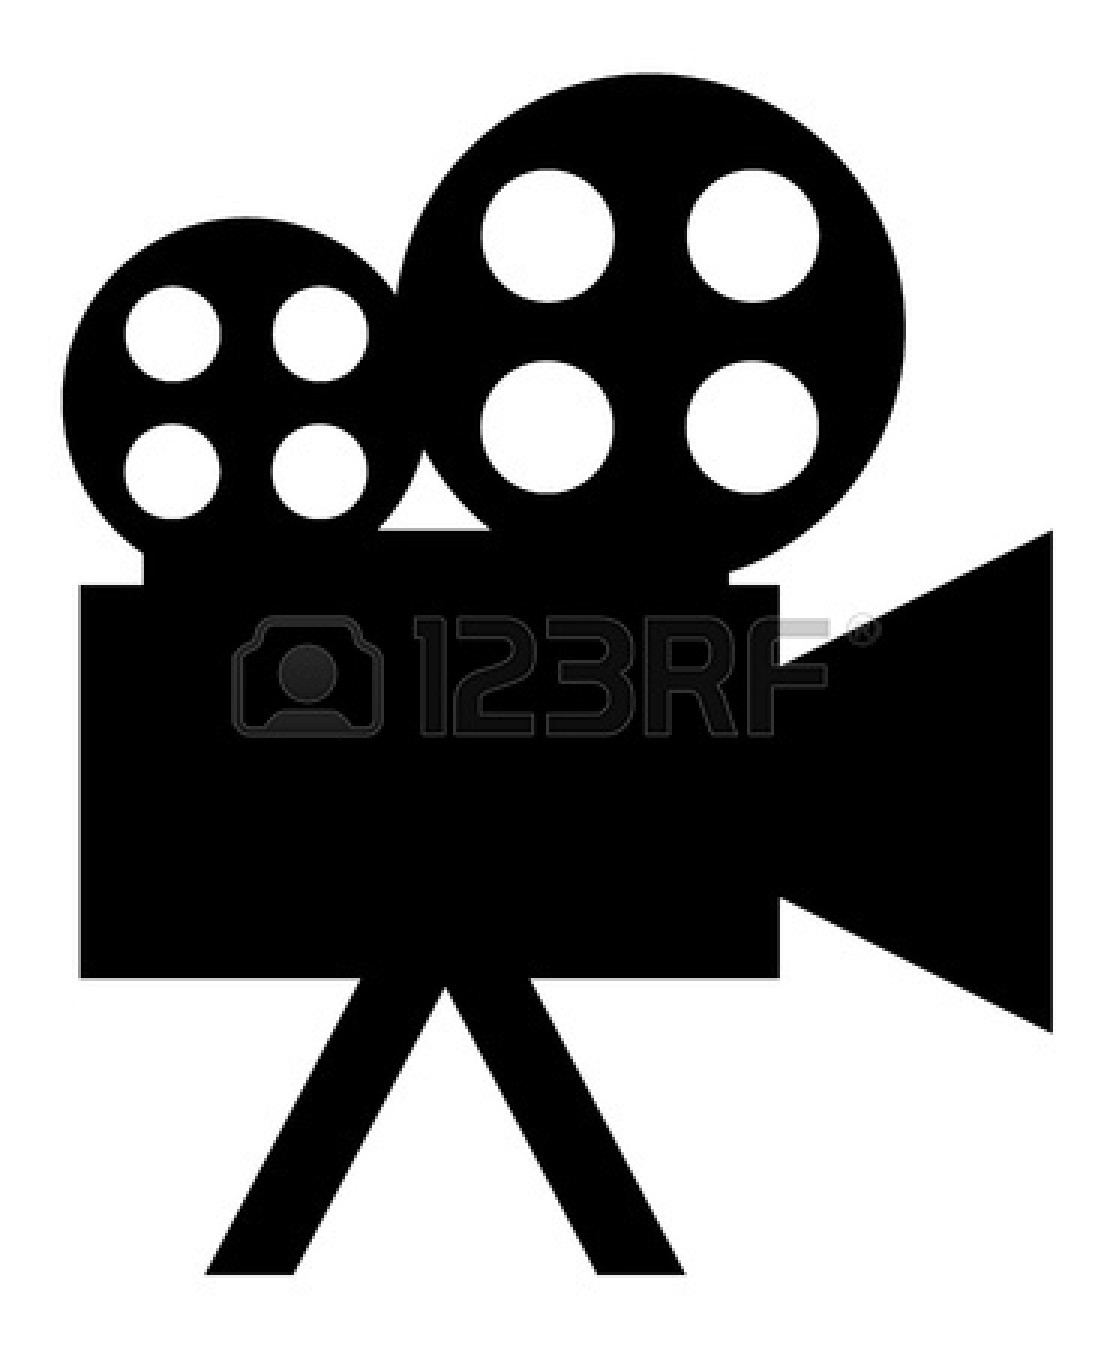 Movie clipart silhouette Movie Panda Images Clipart Projector